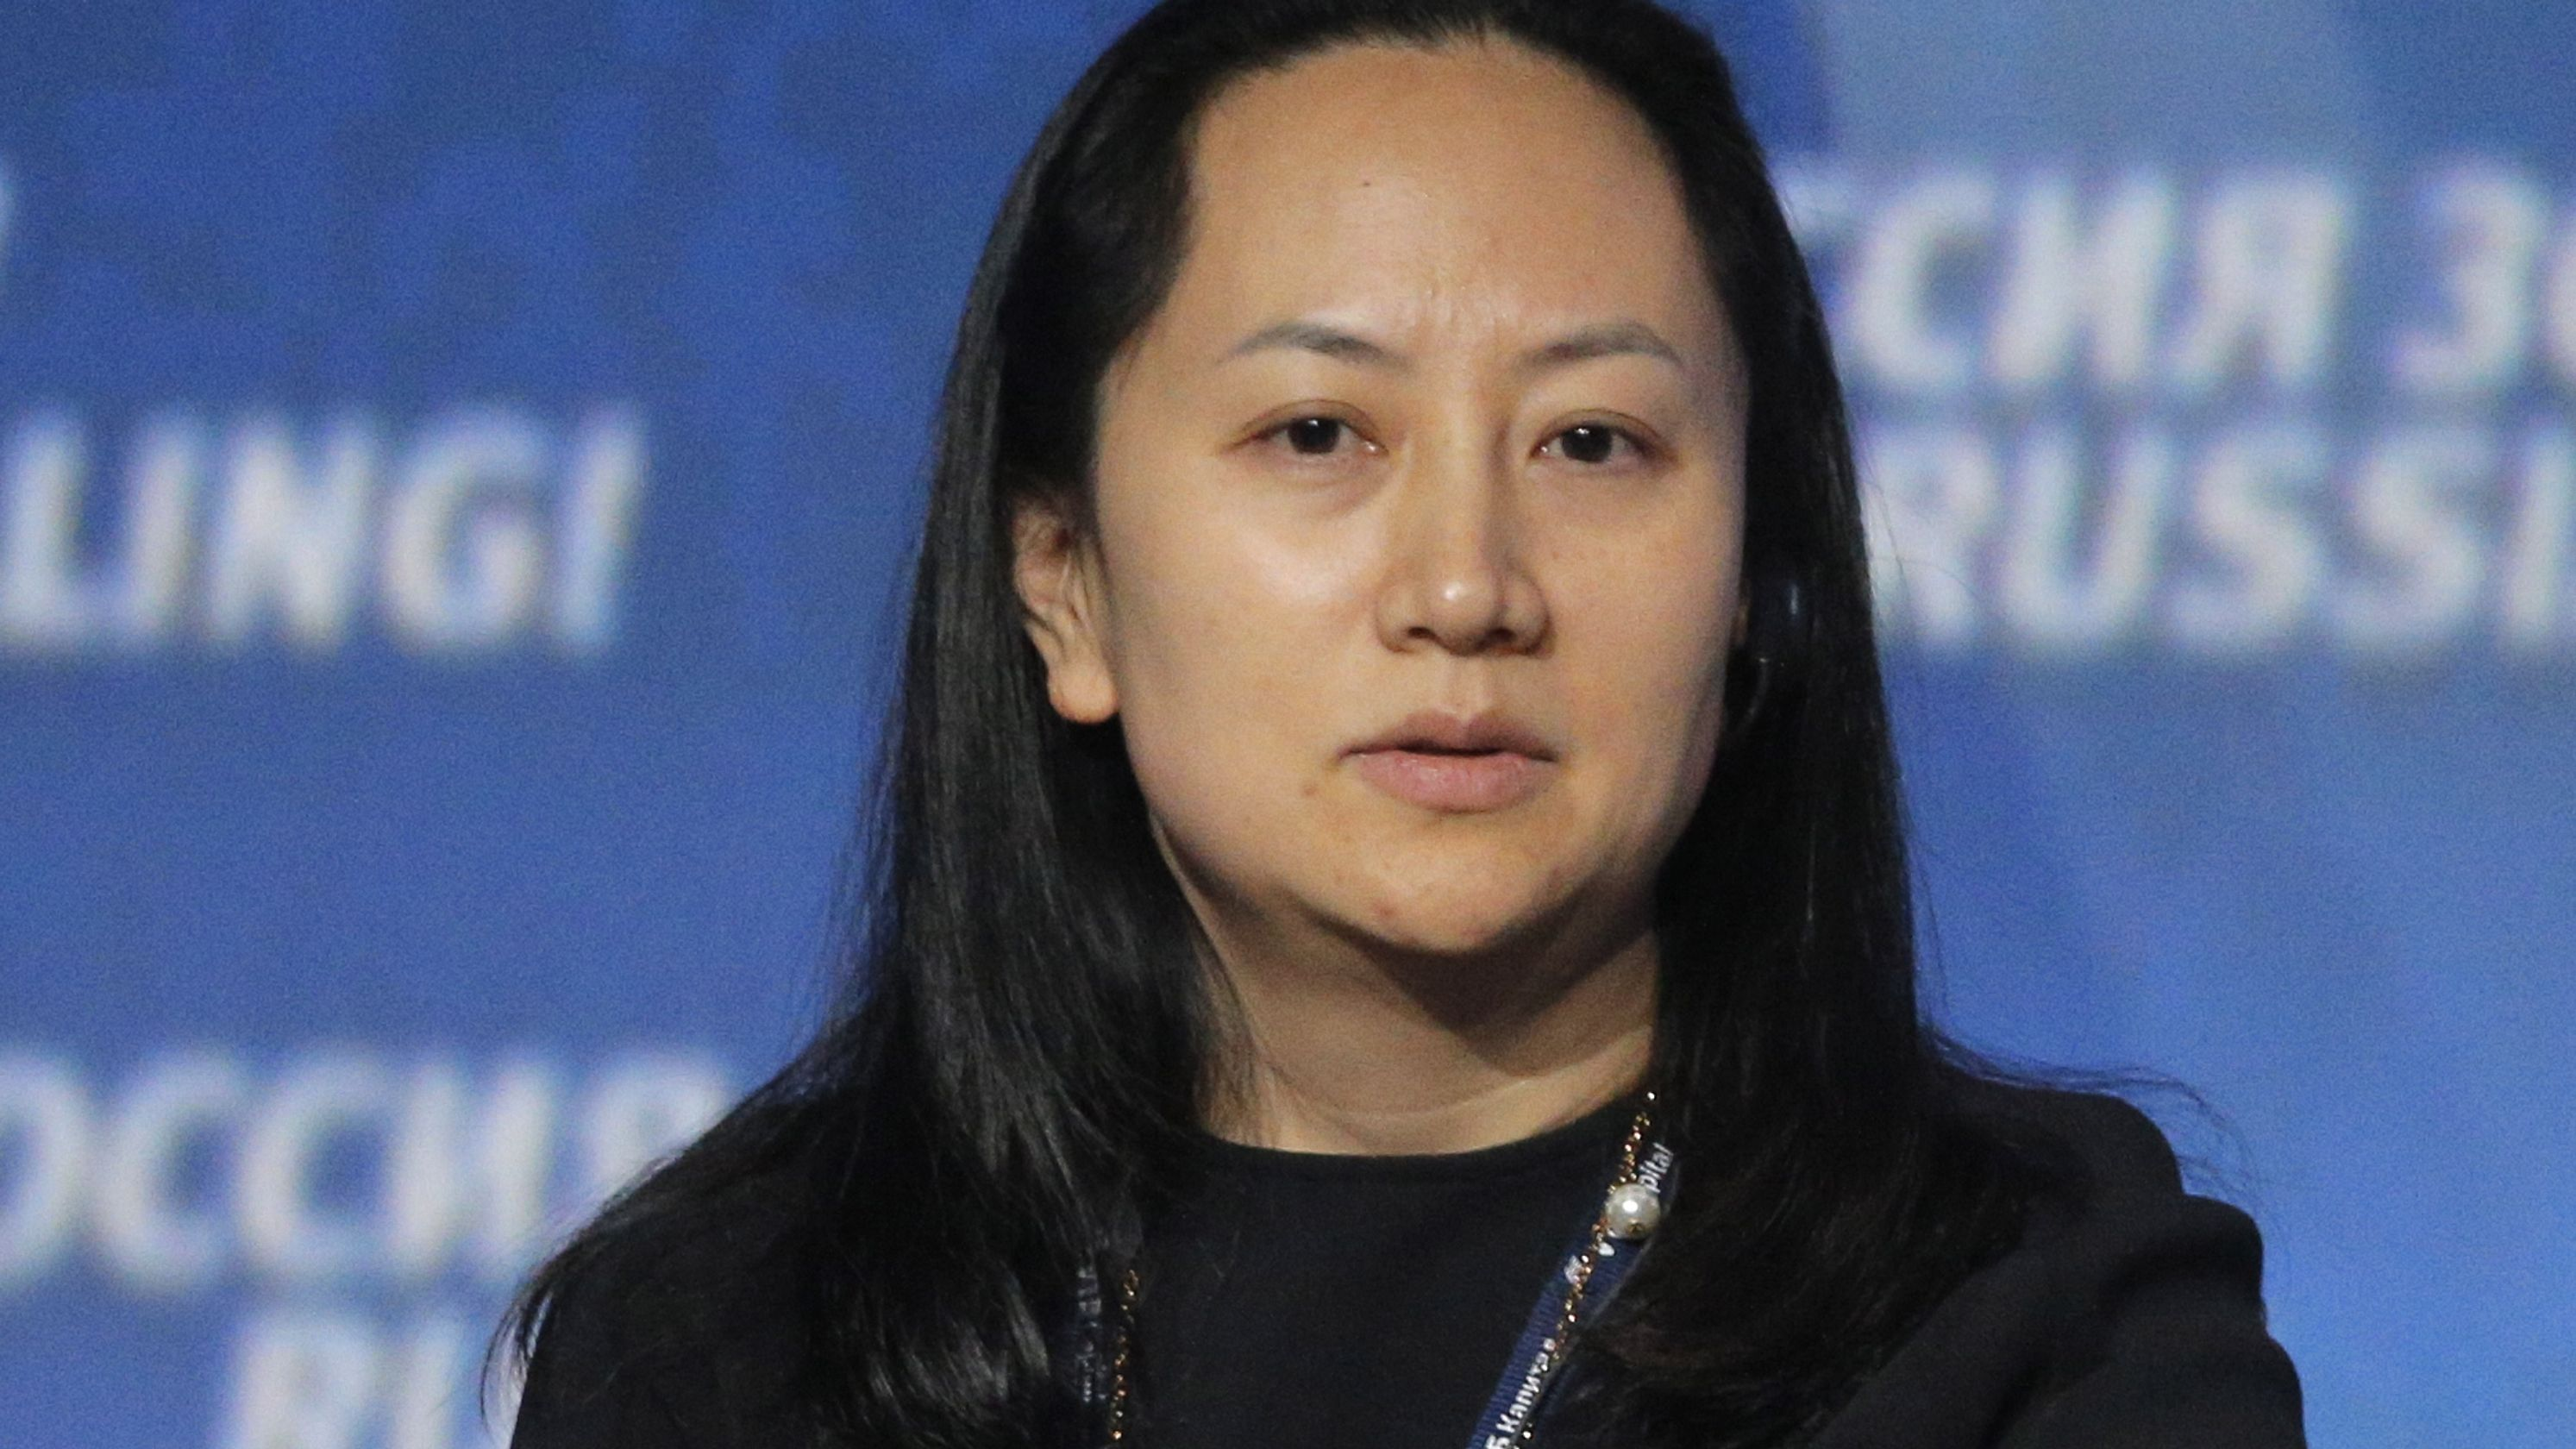 Angry China summons US ambassador over arrest of tech exec Meng Wanzhou